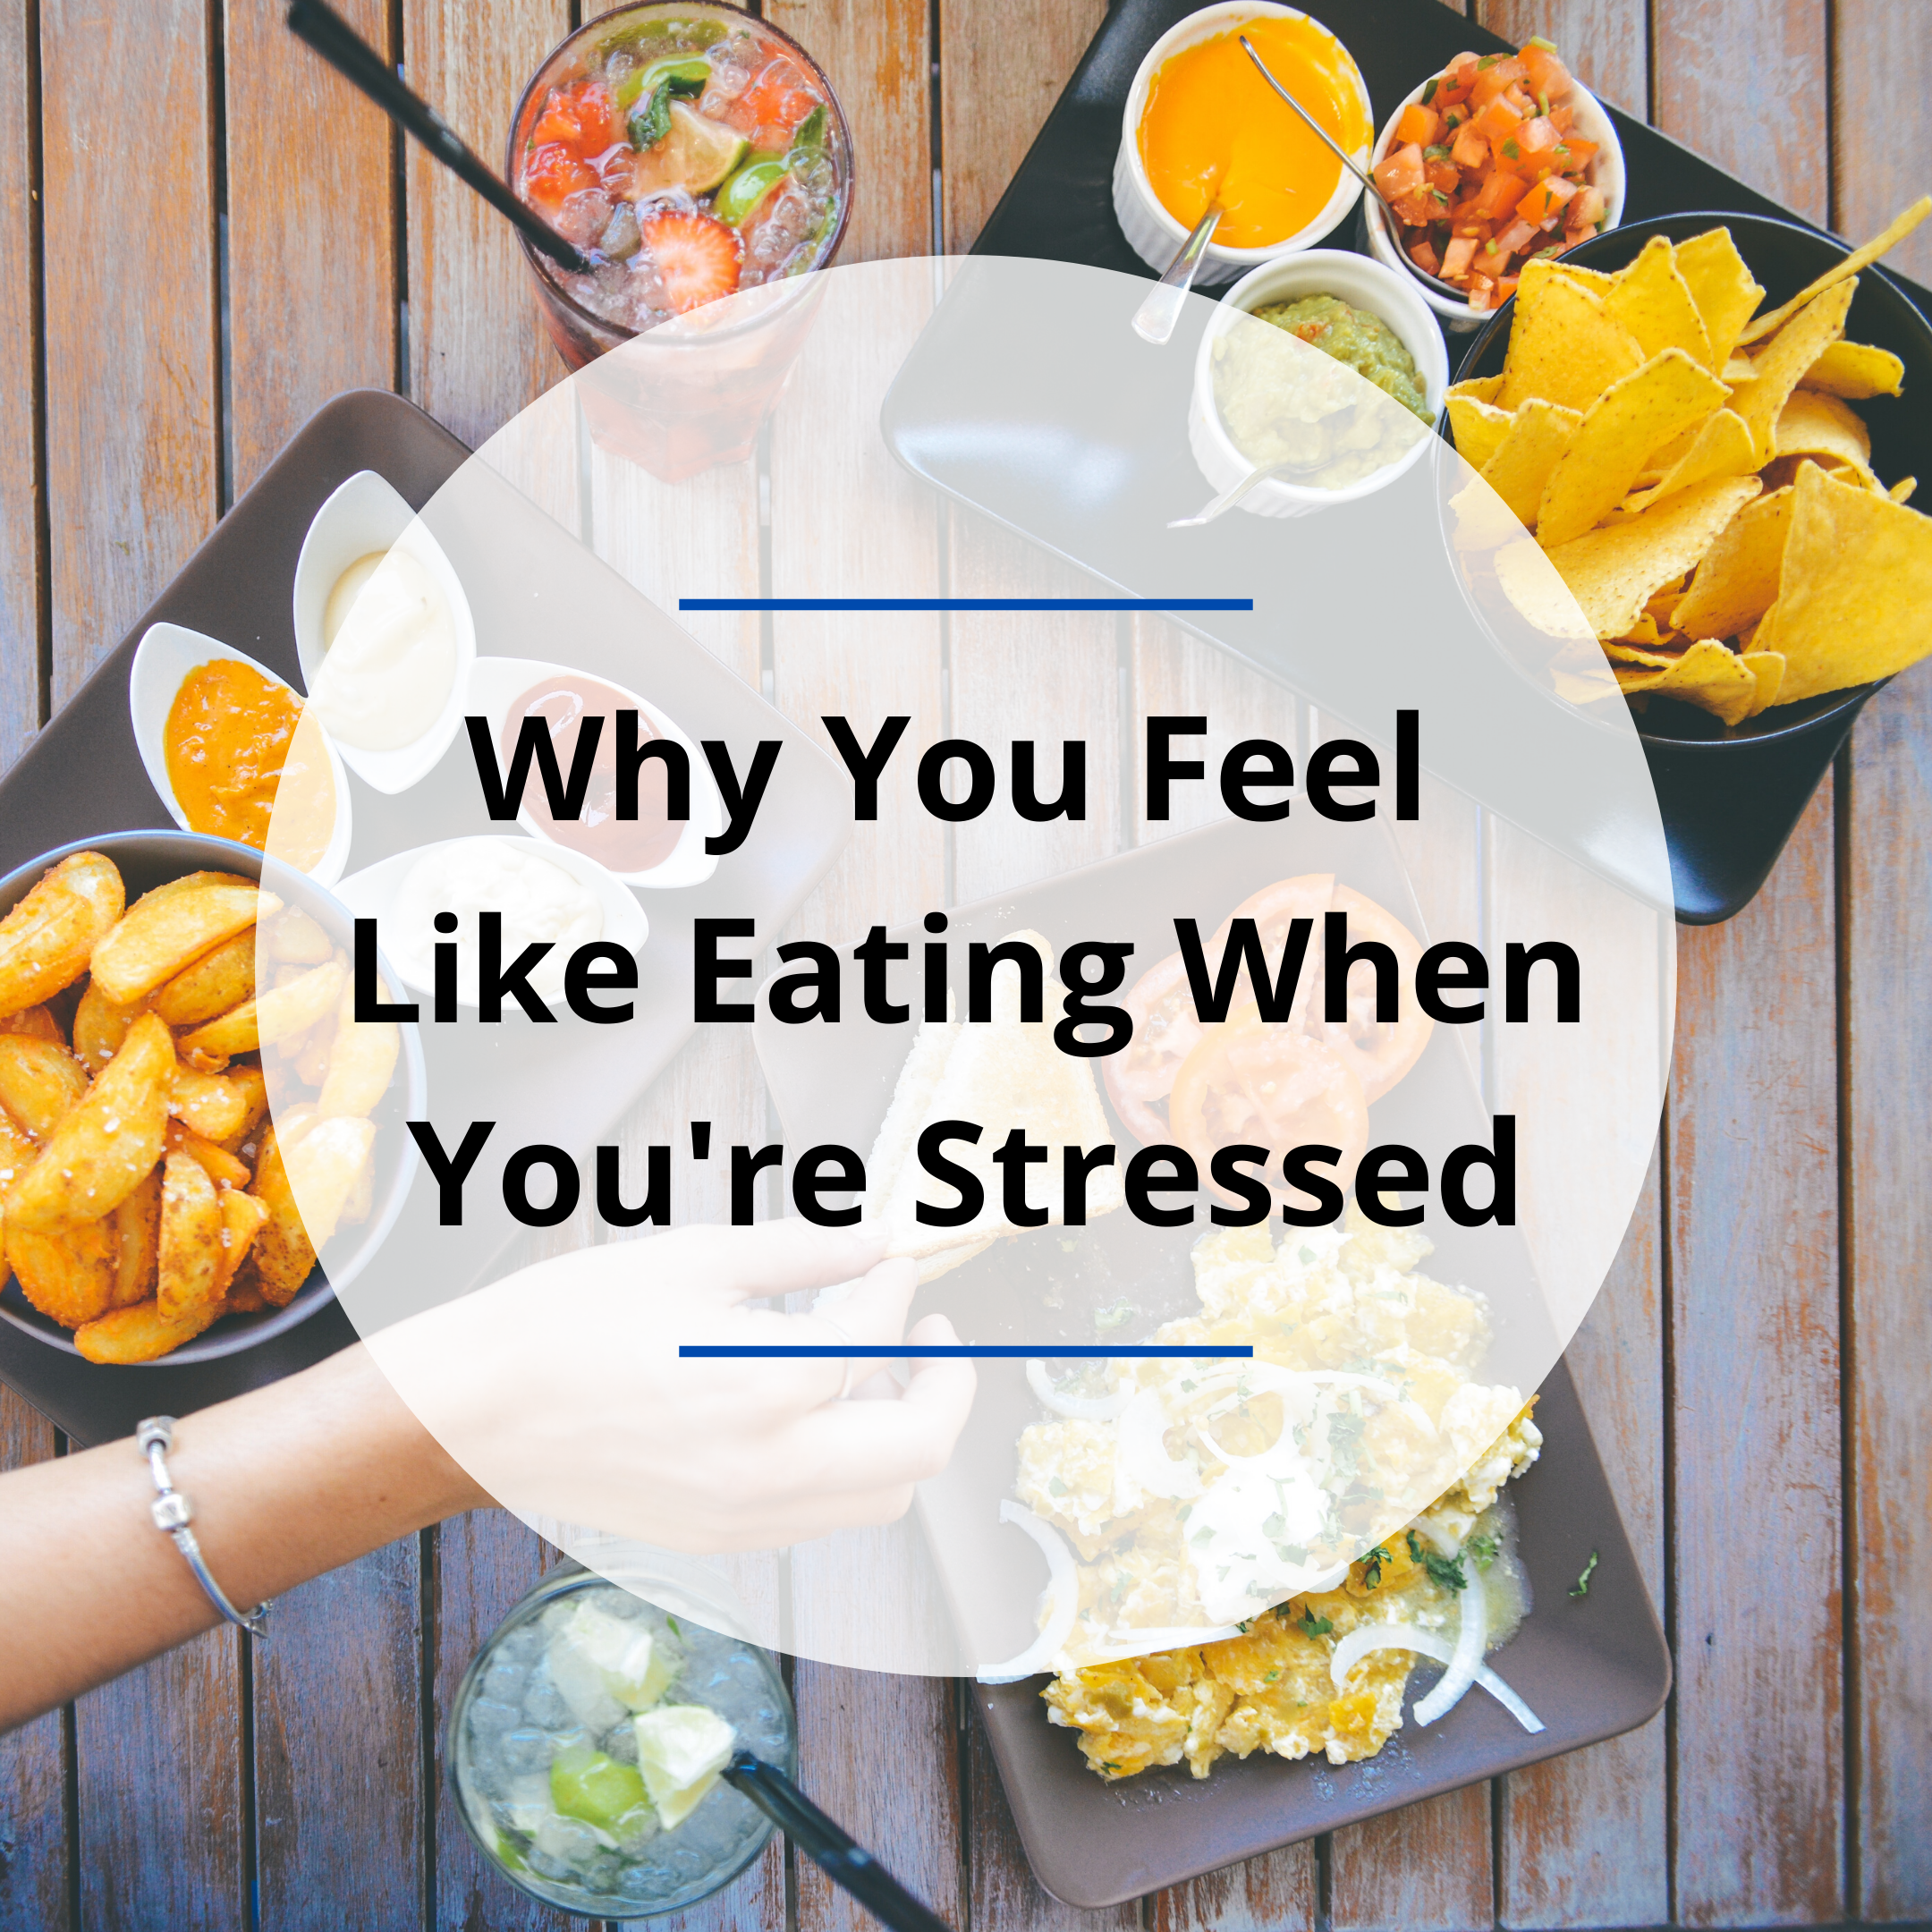 Why You Feel like Eating When You're Stressed